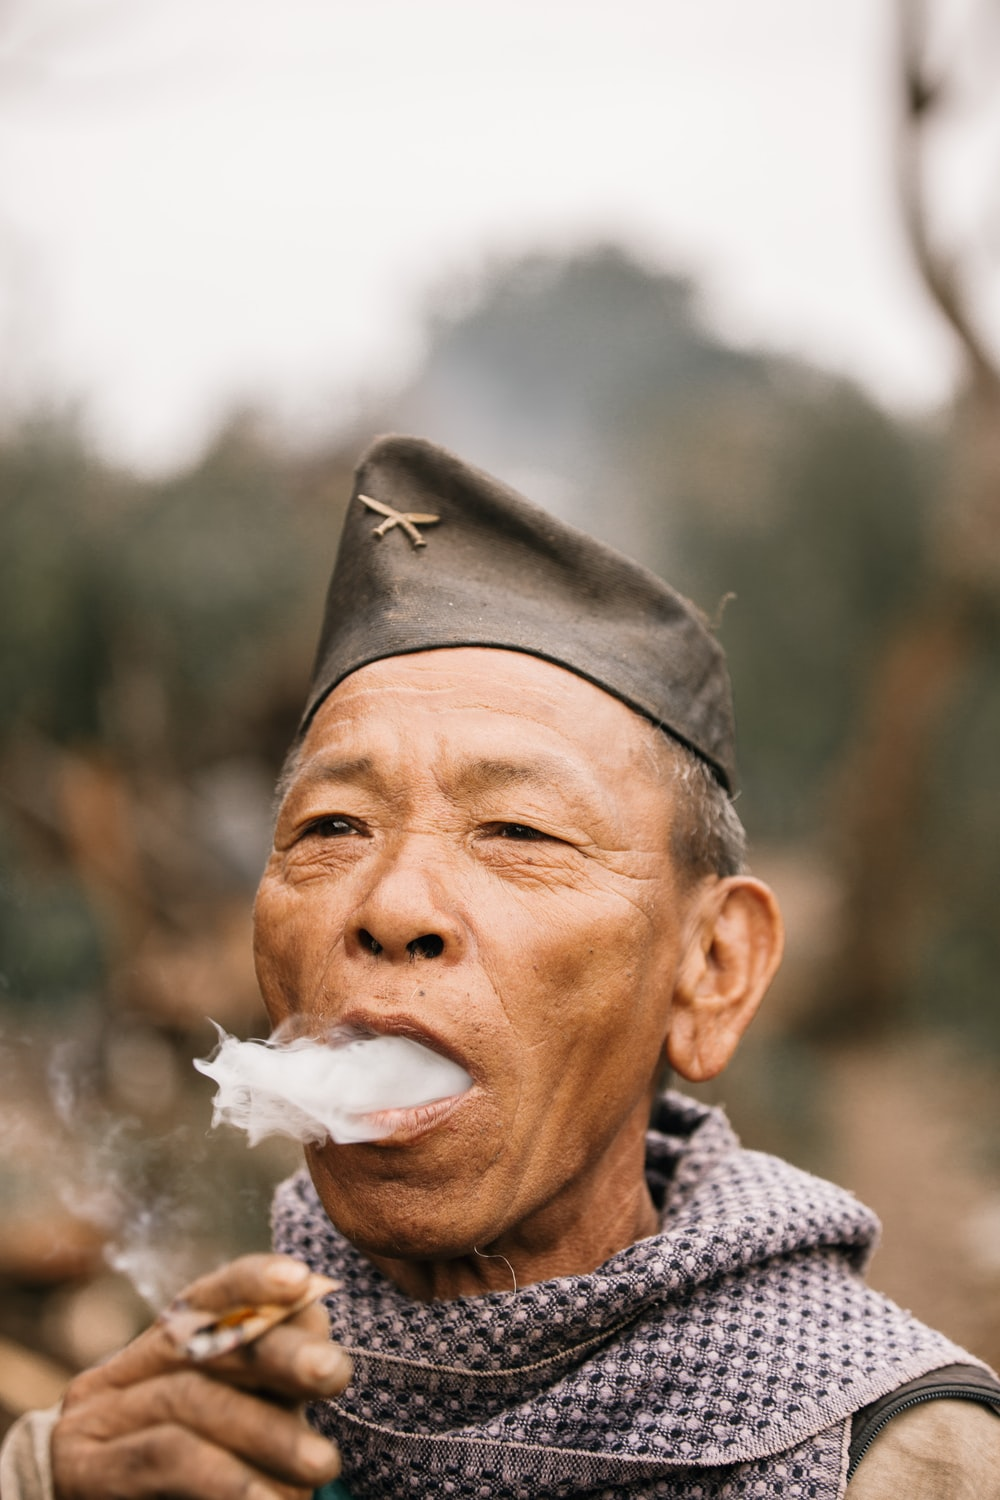 man in black hat with white powder on his mouth